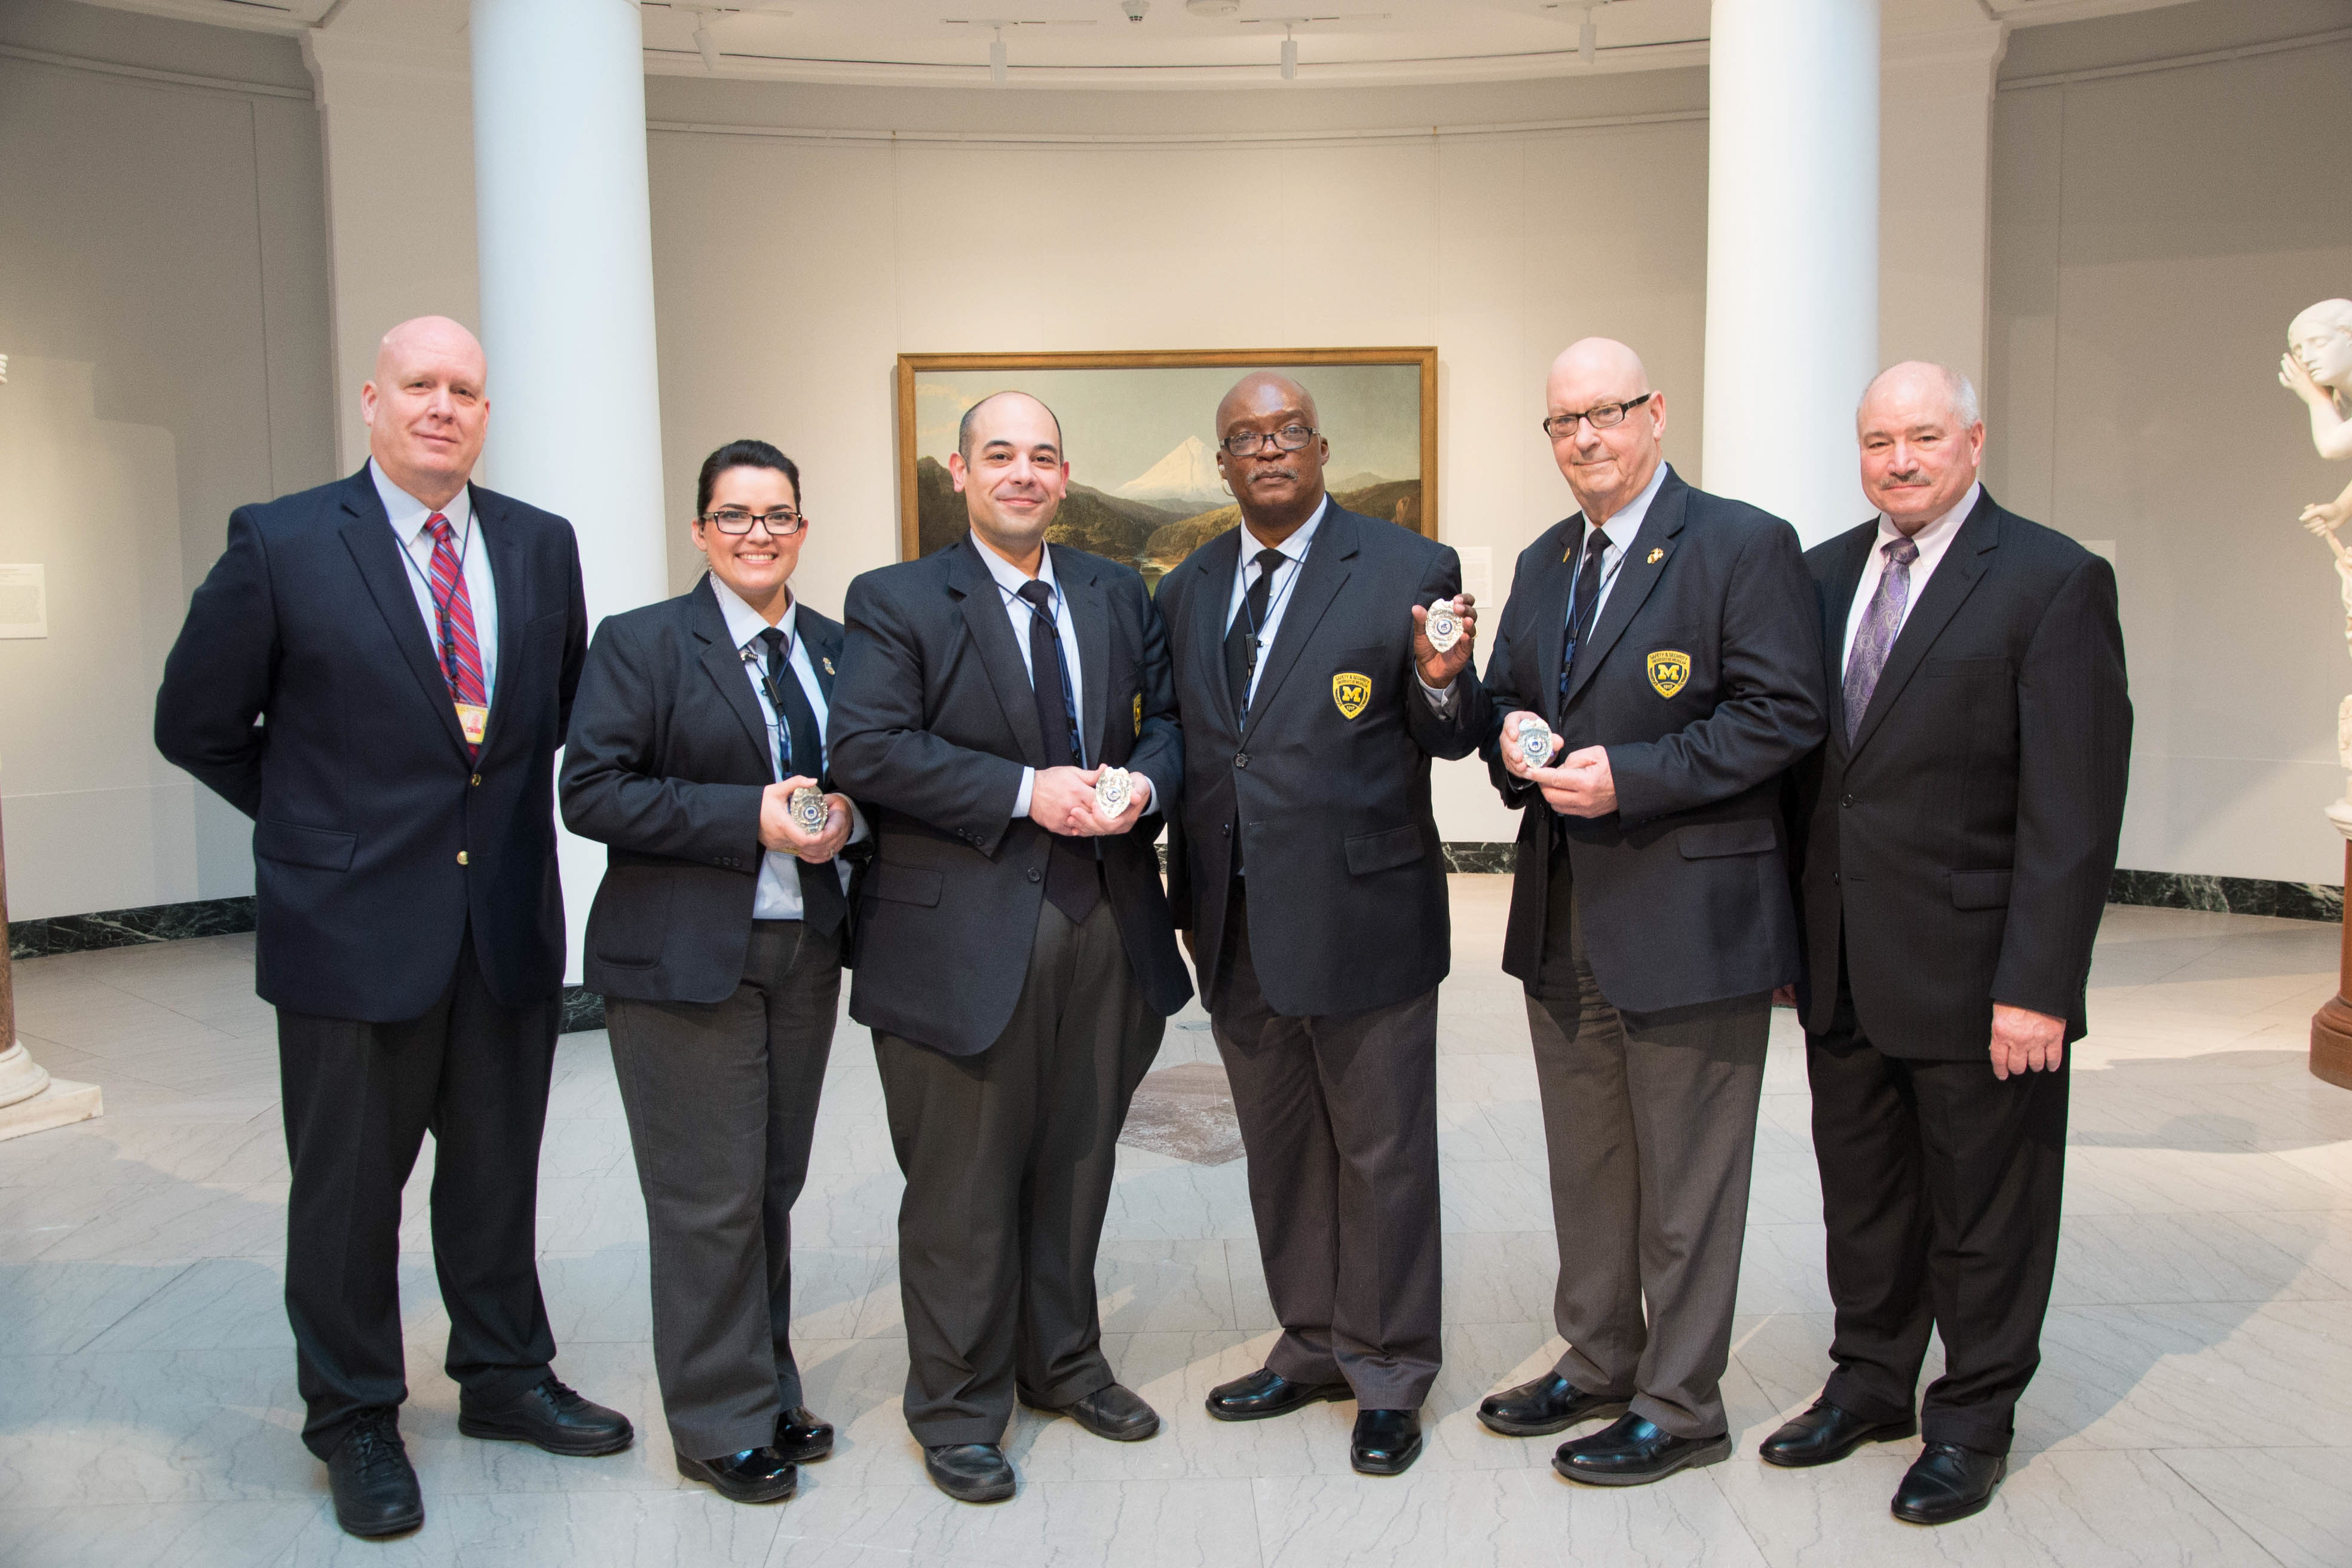 Security Officers receive their badges